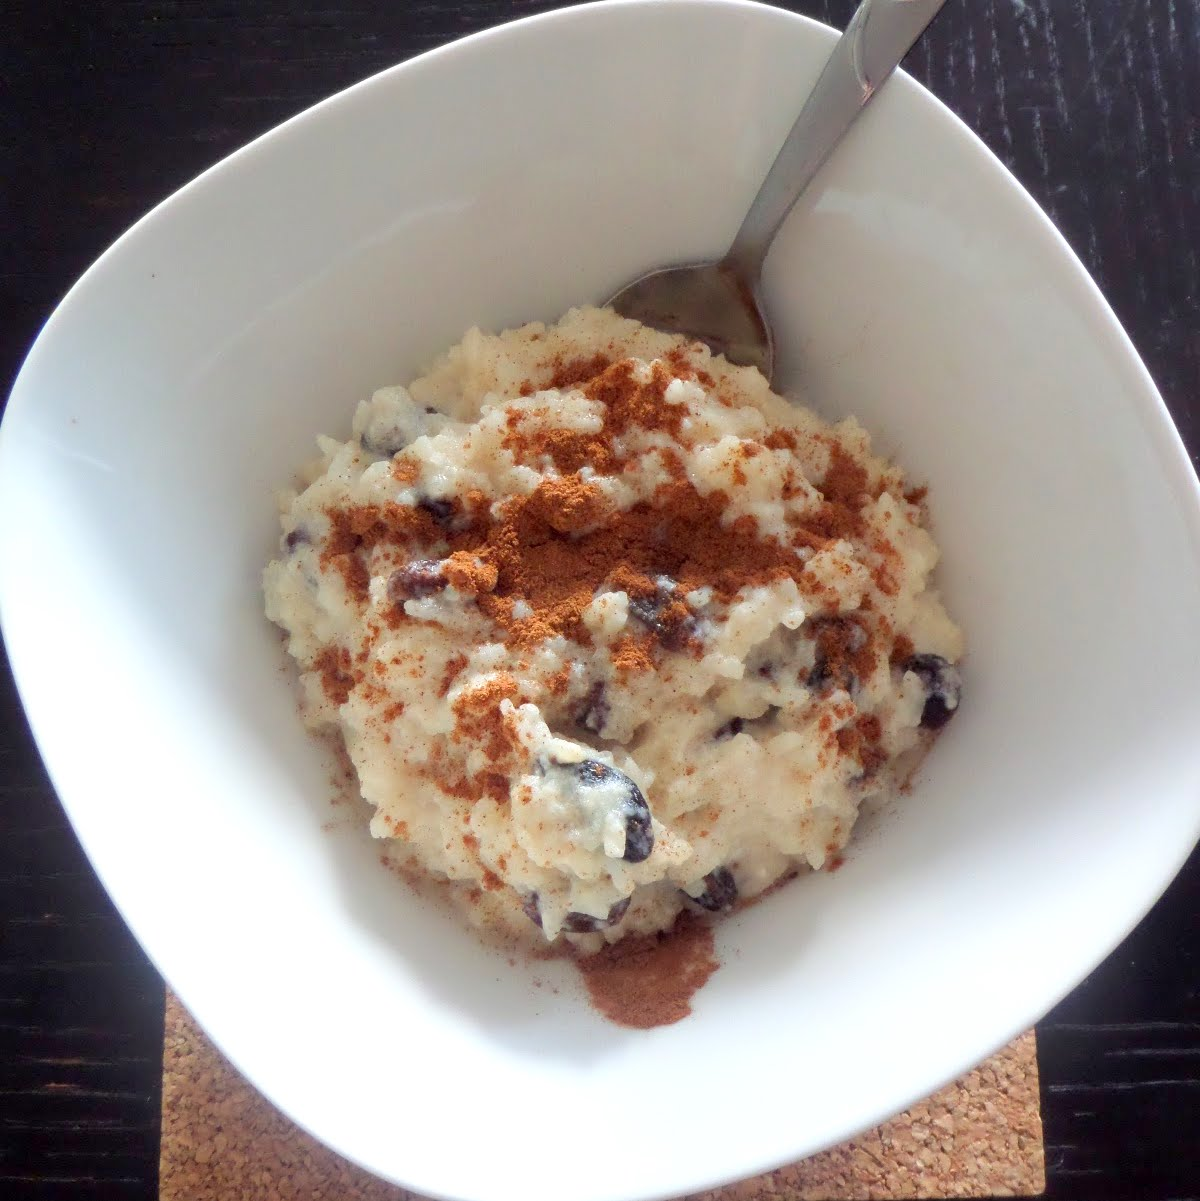 Leftover Rice Pudding:  A creamy pudding made with leftover rice, milk, sugar, and raisins.